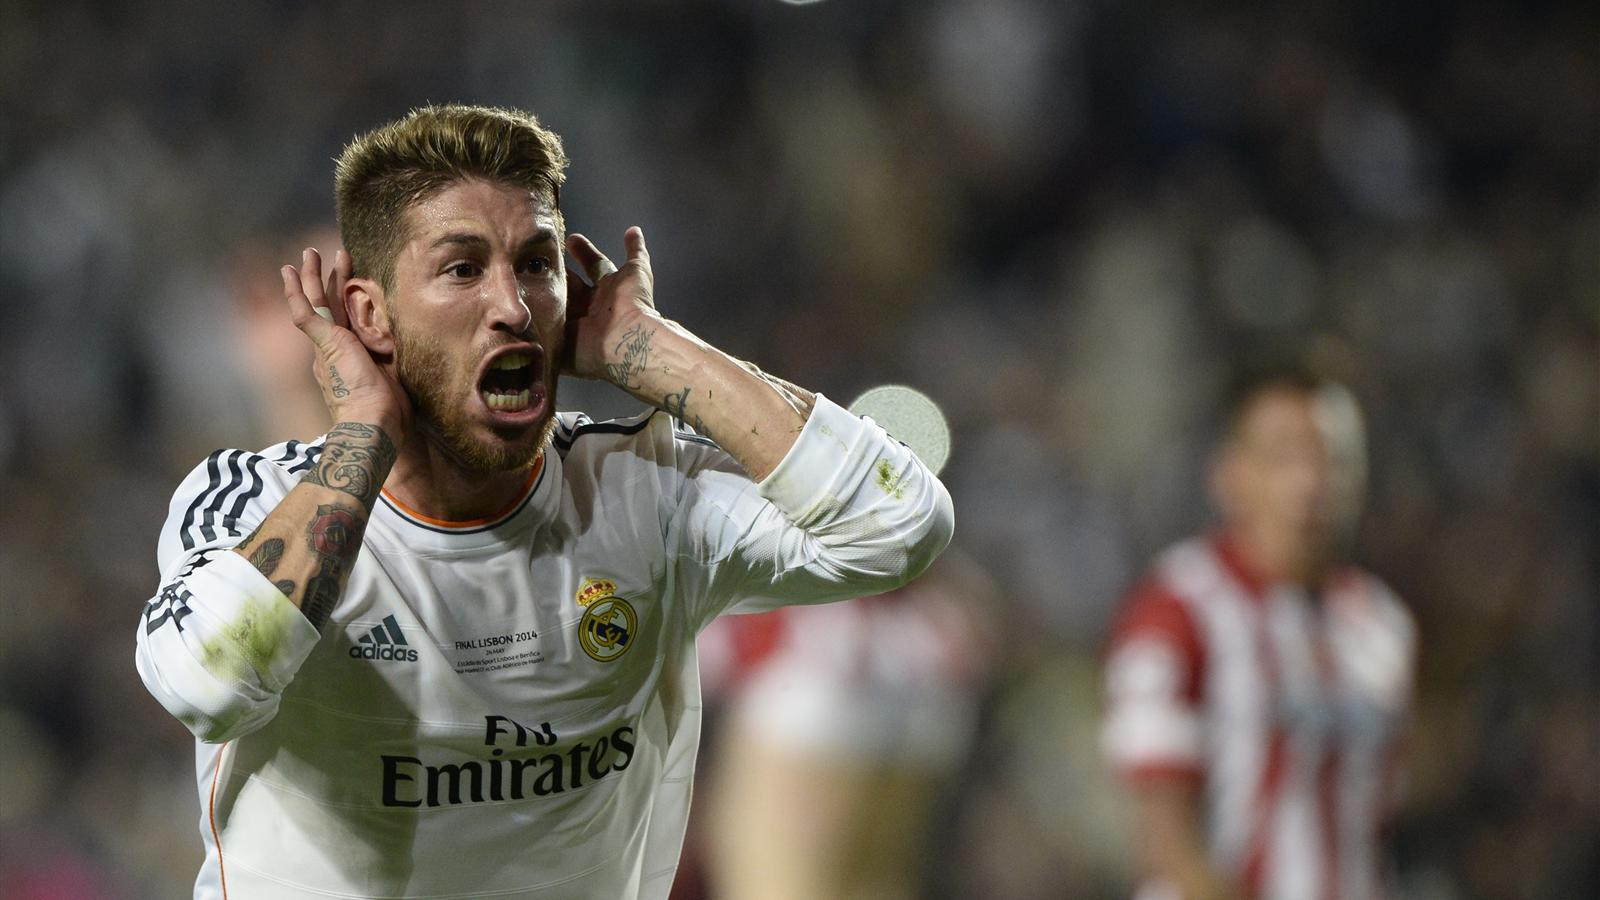 Sergio Ramos equalizes in the Champions League final